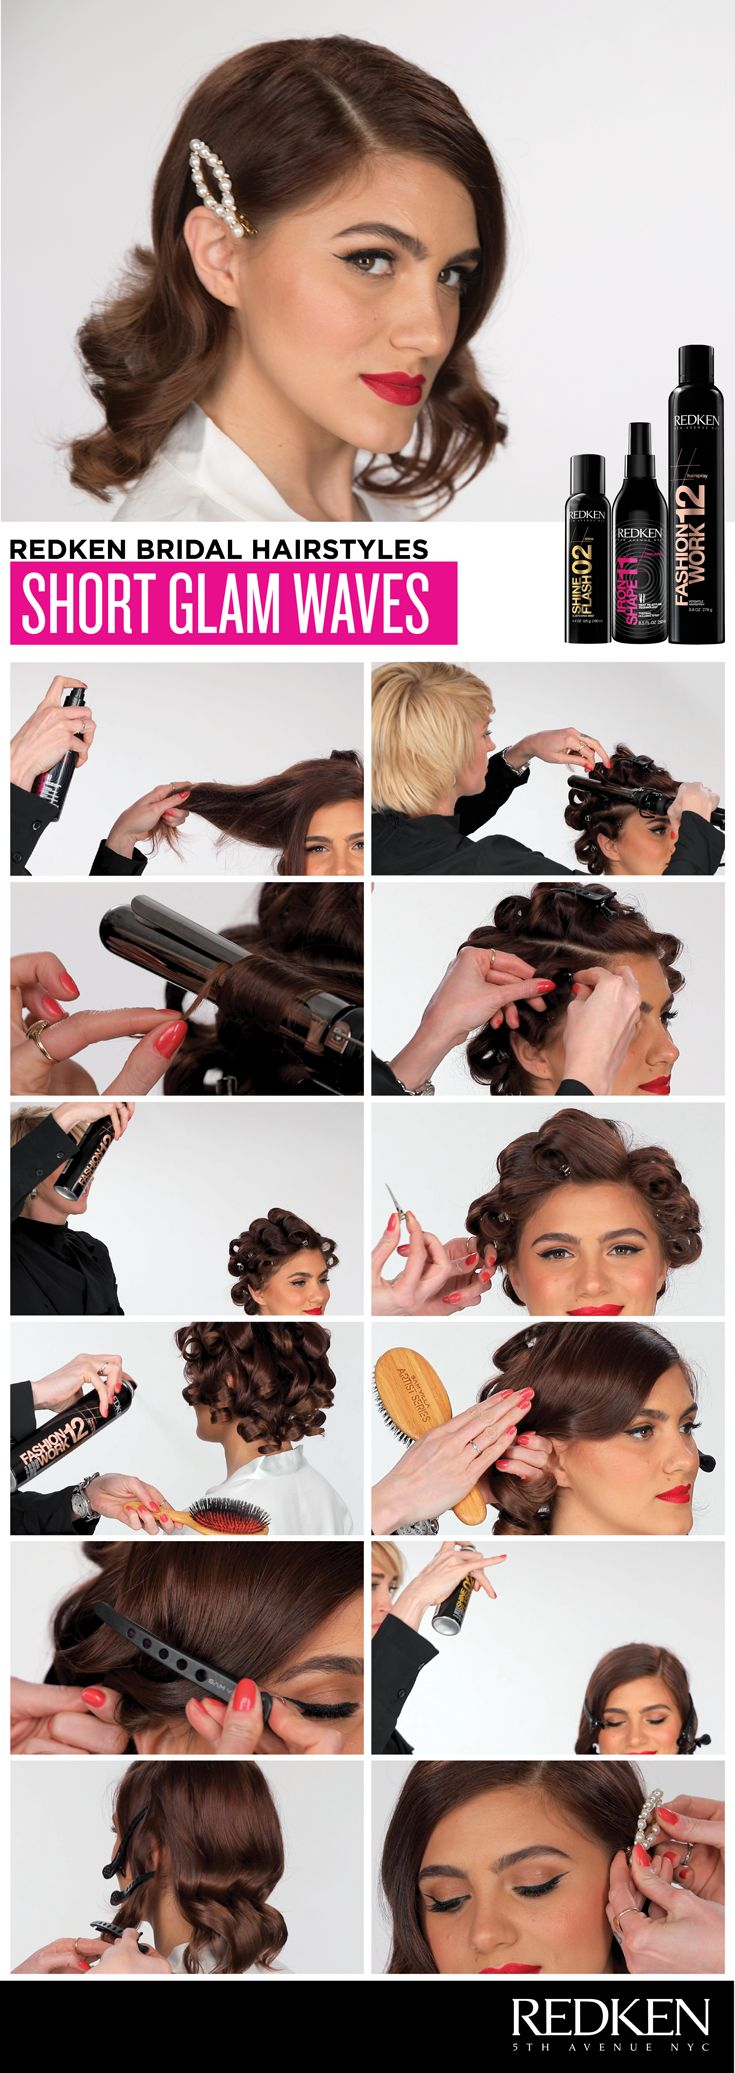 Looking for hair inspo for your big day? Look no further. Click to watch as Redken Artist Jackie Litscher demonstrates how to create hollywood-inspired glam waves on short hair using Redken Shine Flash 02, Fashion Work 12, and Iron Shape 11.